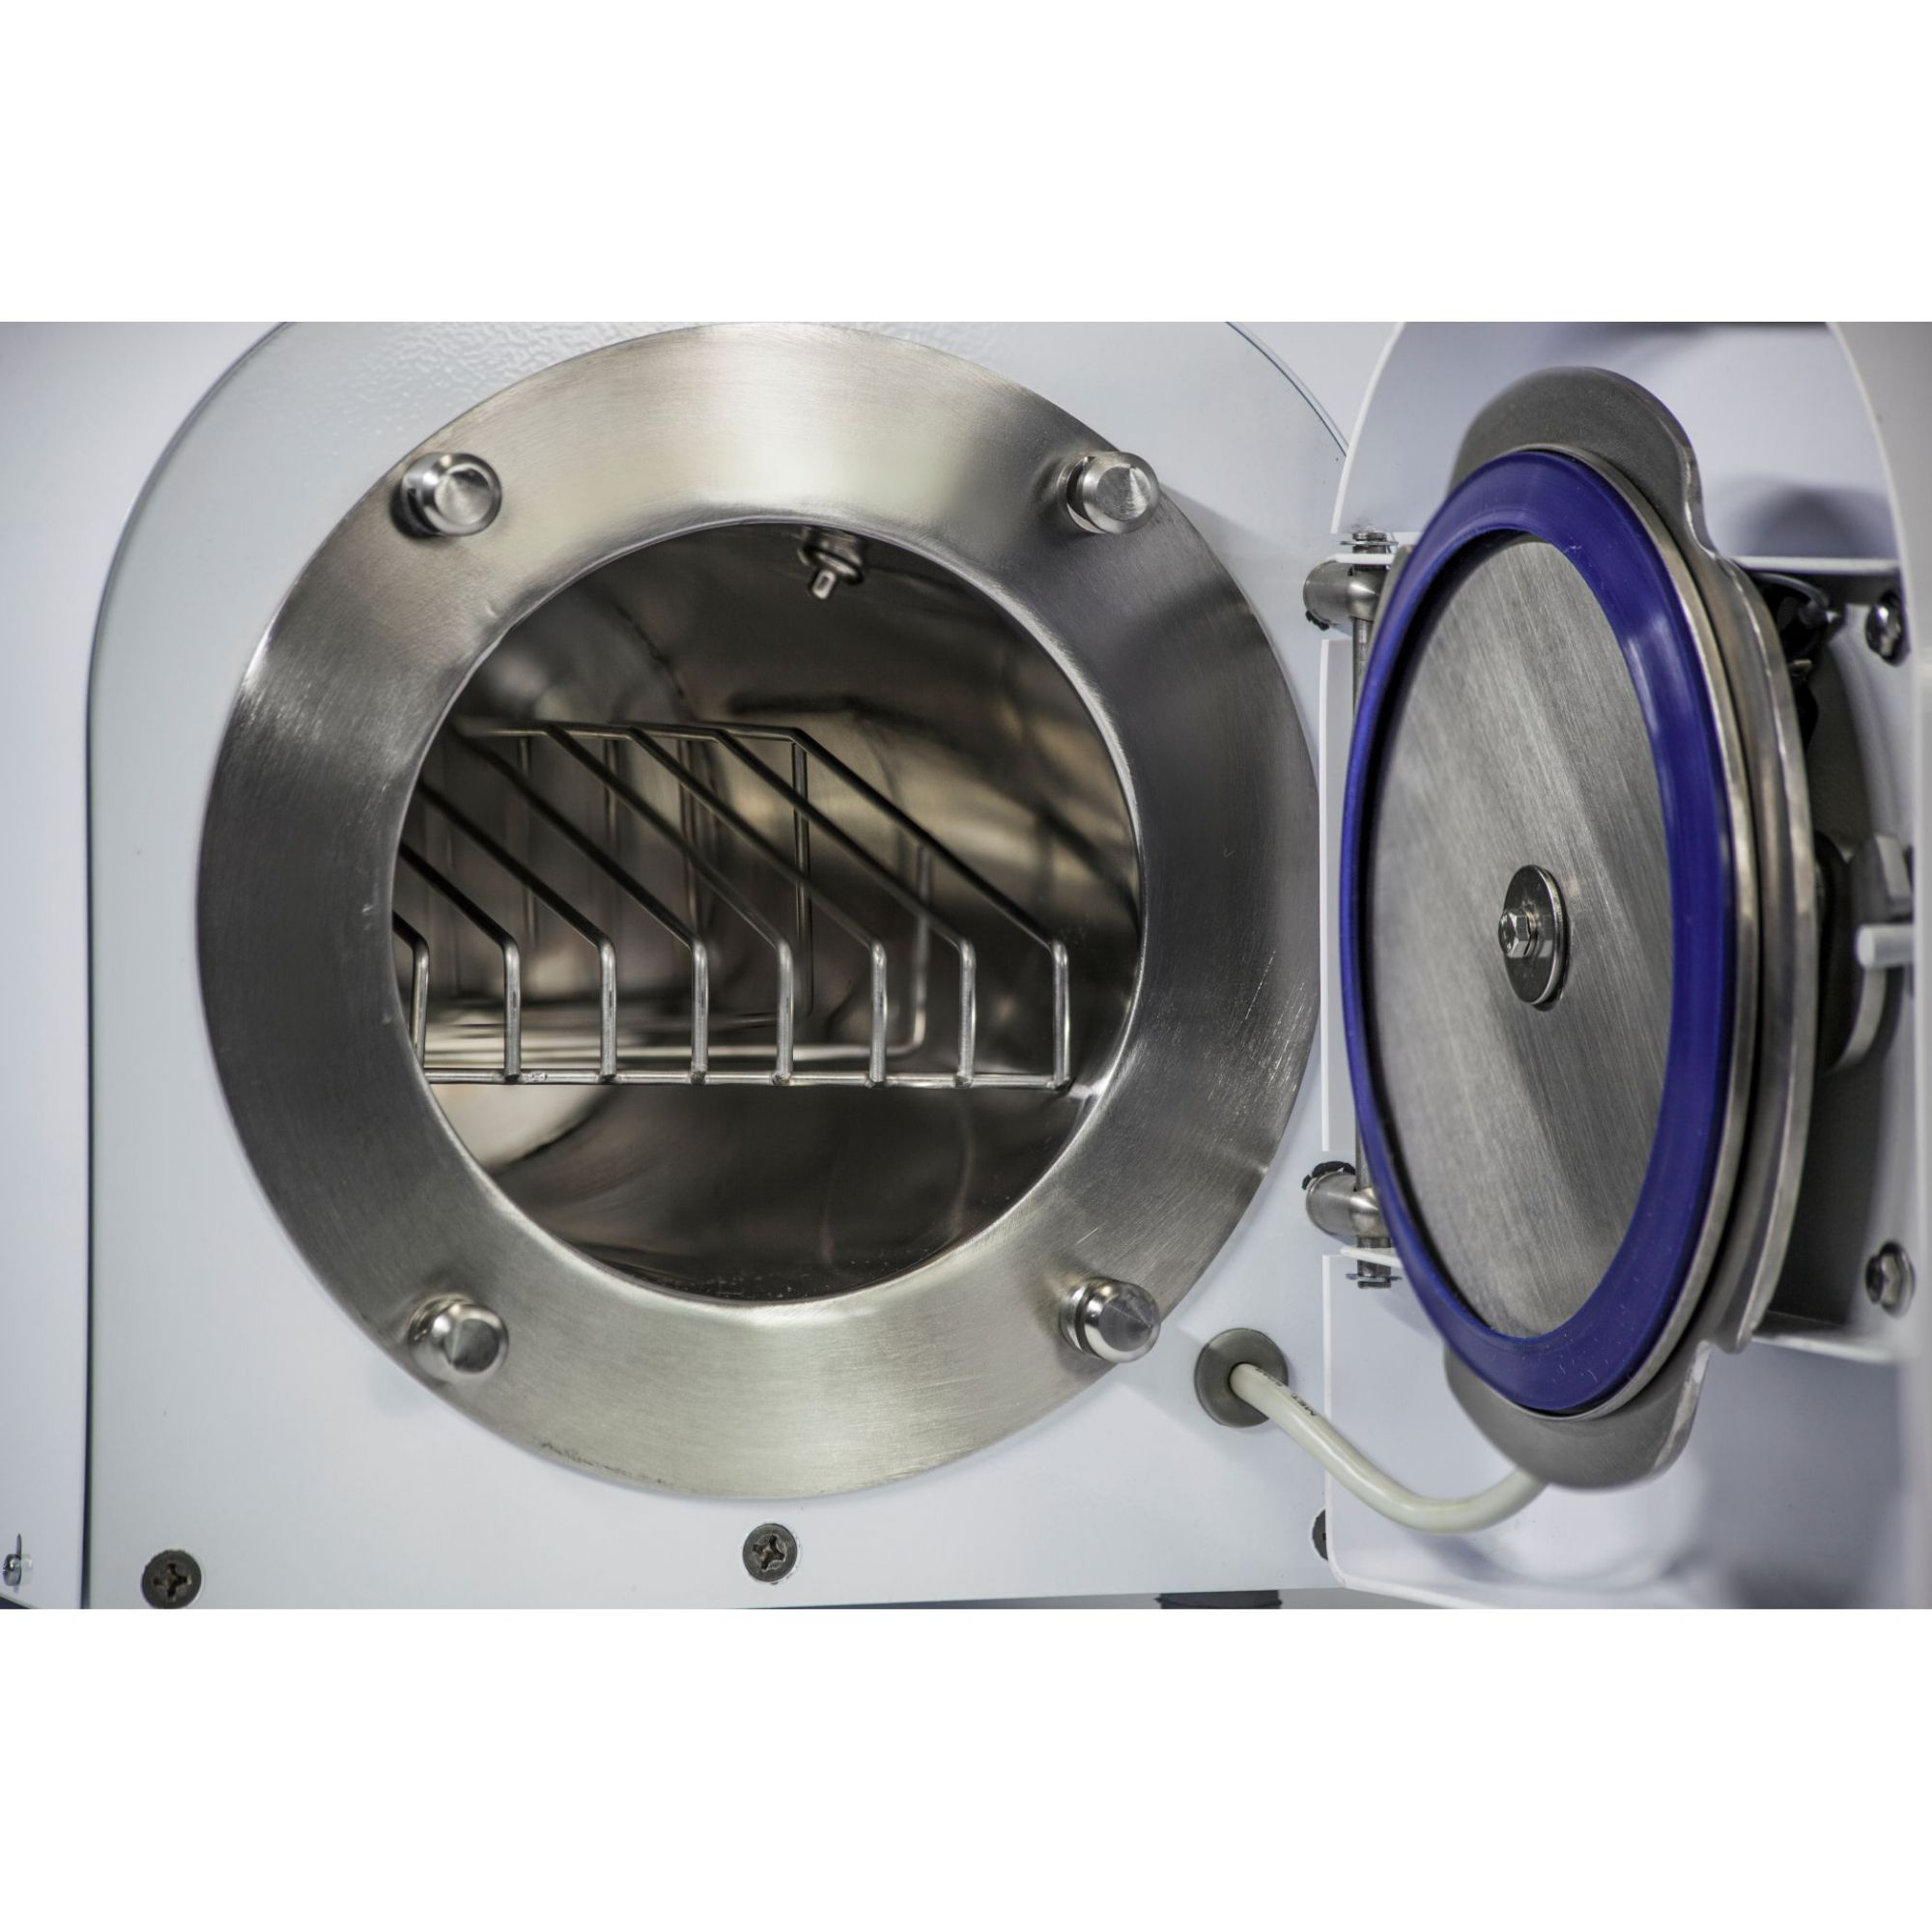 Autoclave Advance EC5D